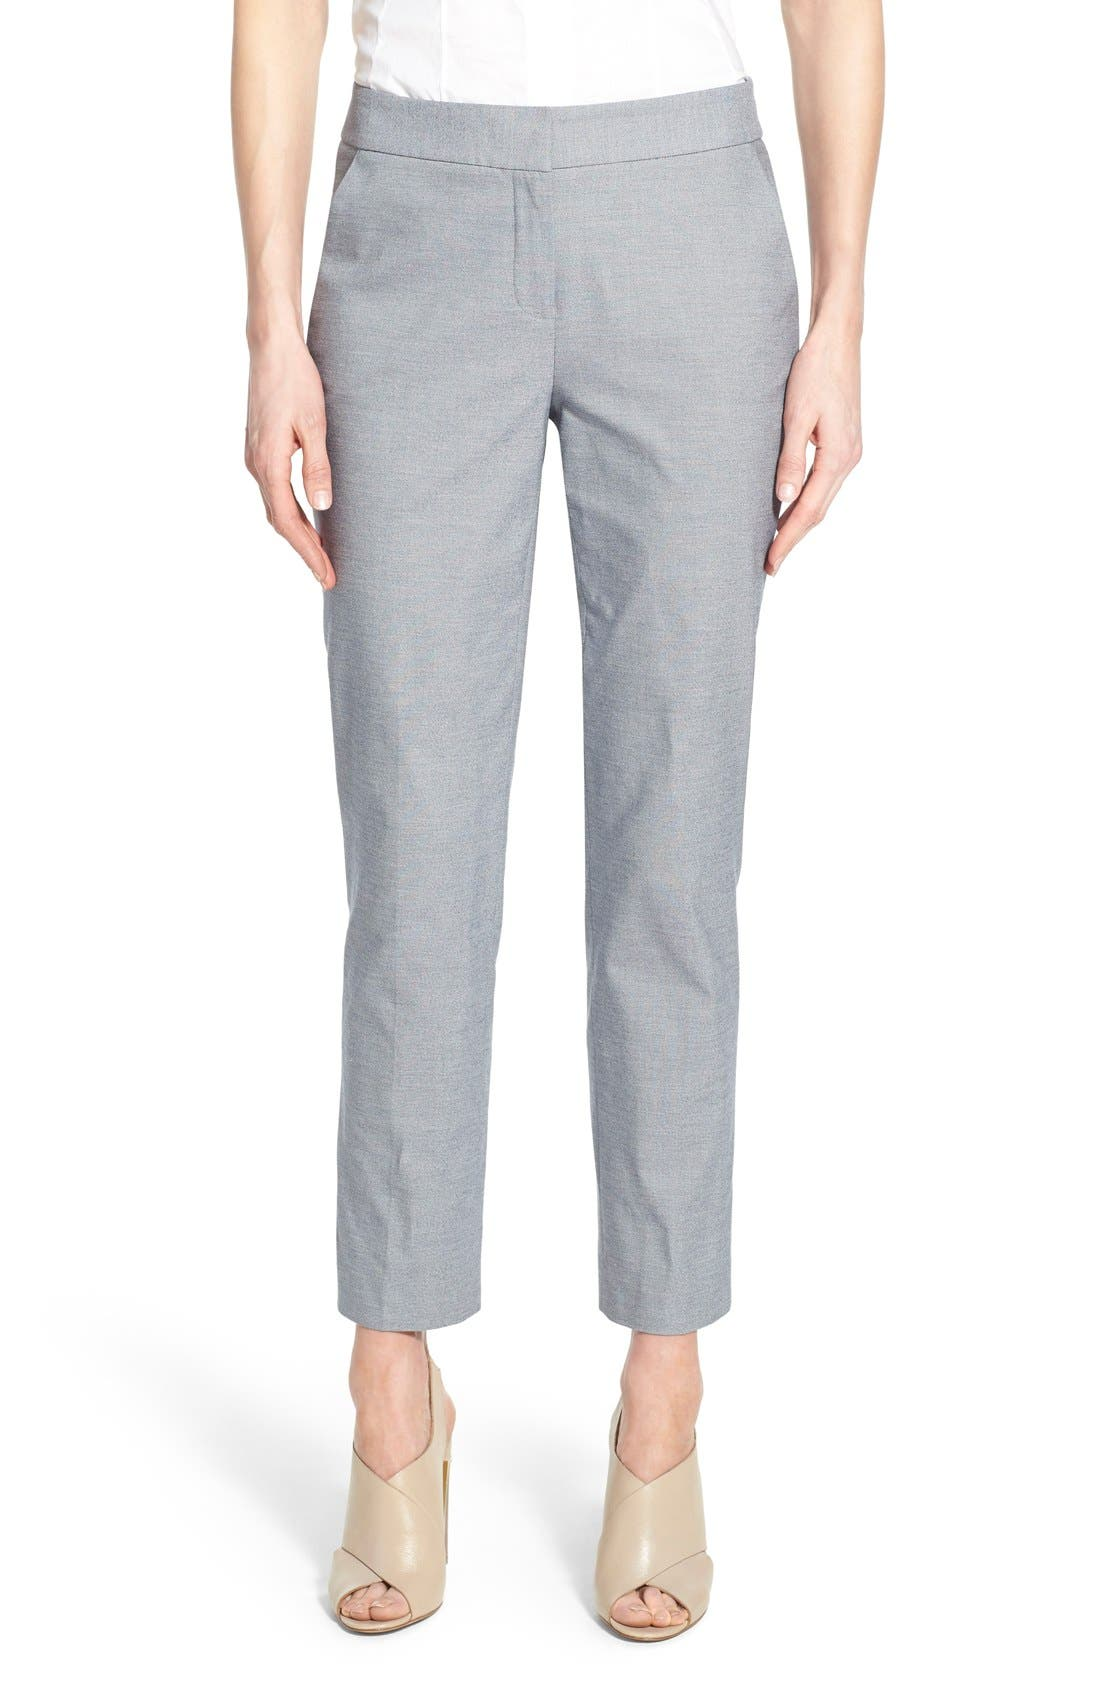 Alternate Image 1 Selected - Nordstrom Collection Stretch Cotton Slim Ankle Pants